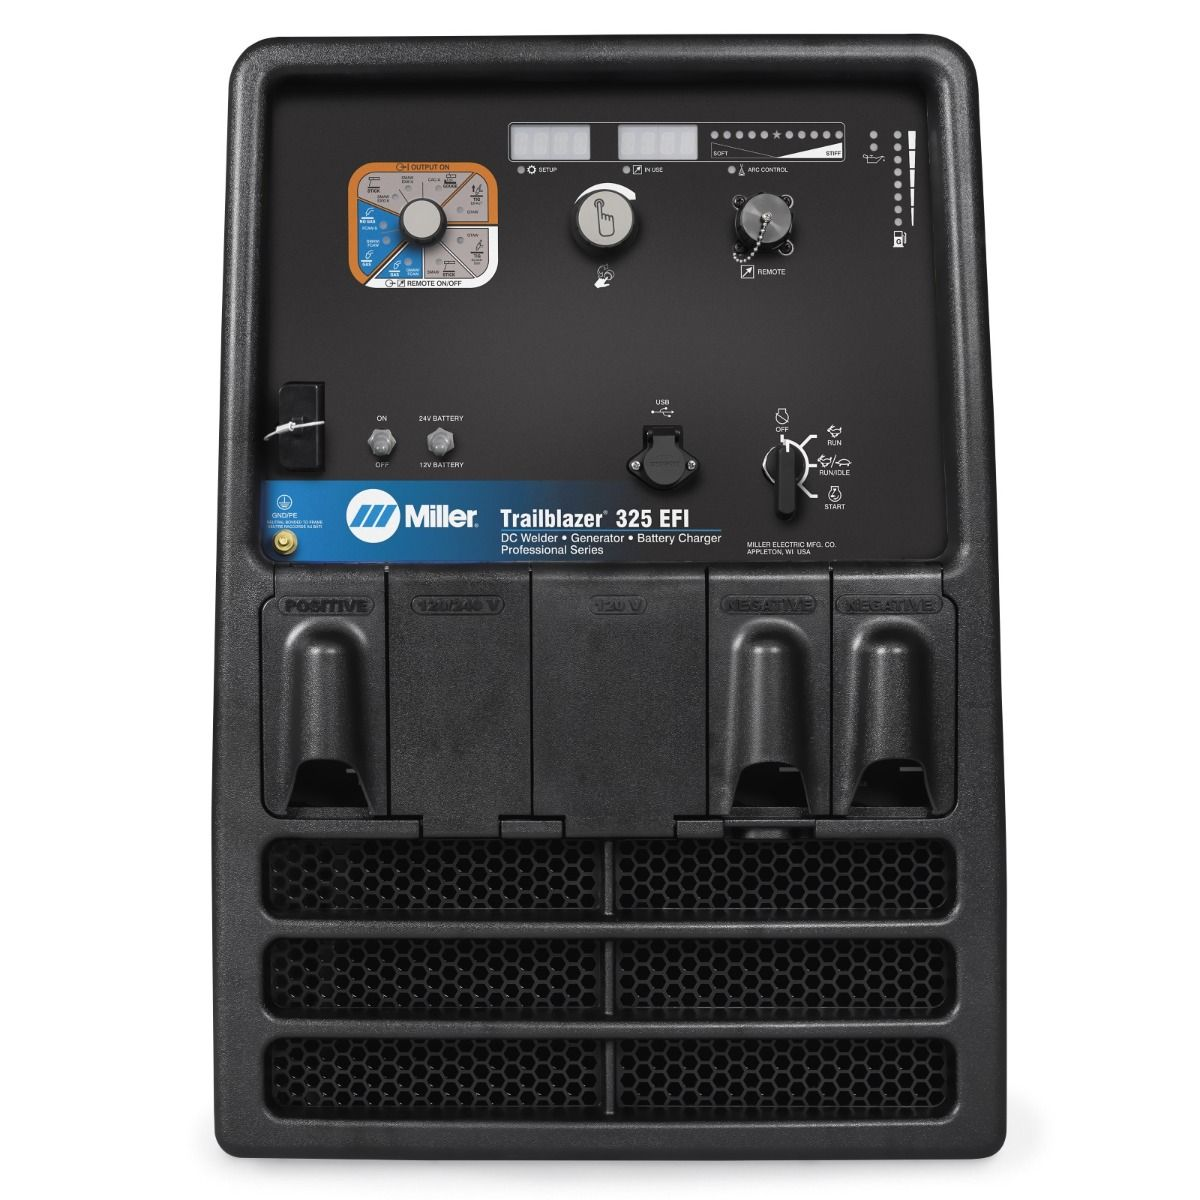 Miller Trailblazer 325 Efi Kohler Engine Welder Generator With Excel Also 220 Volt To Adapter On Cord Wiring Power Battery Charge Jump Start 907754003